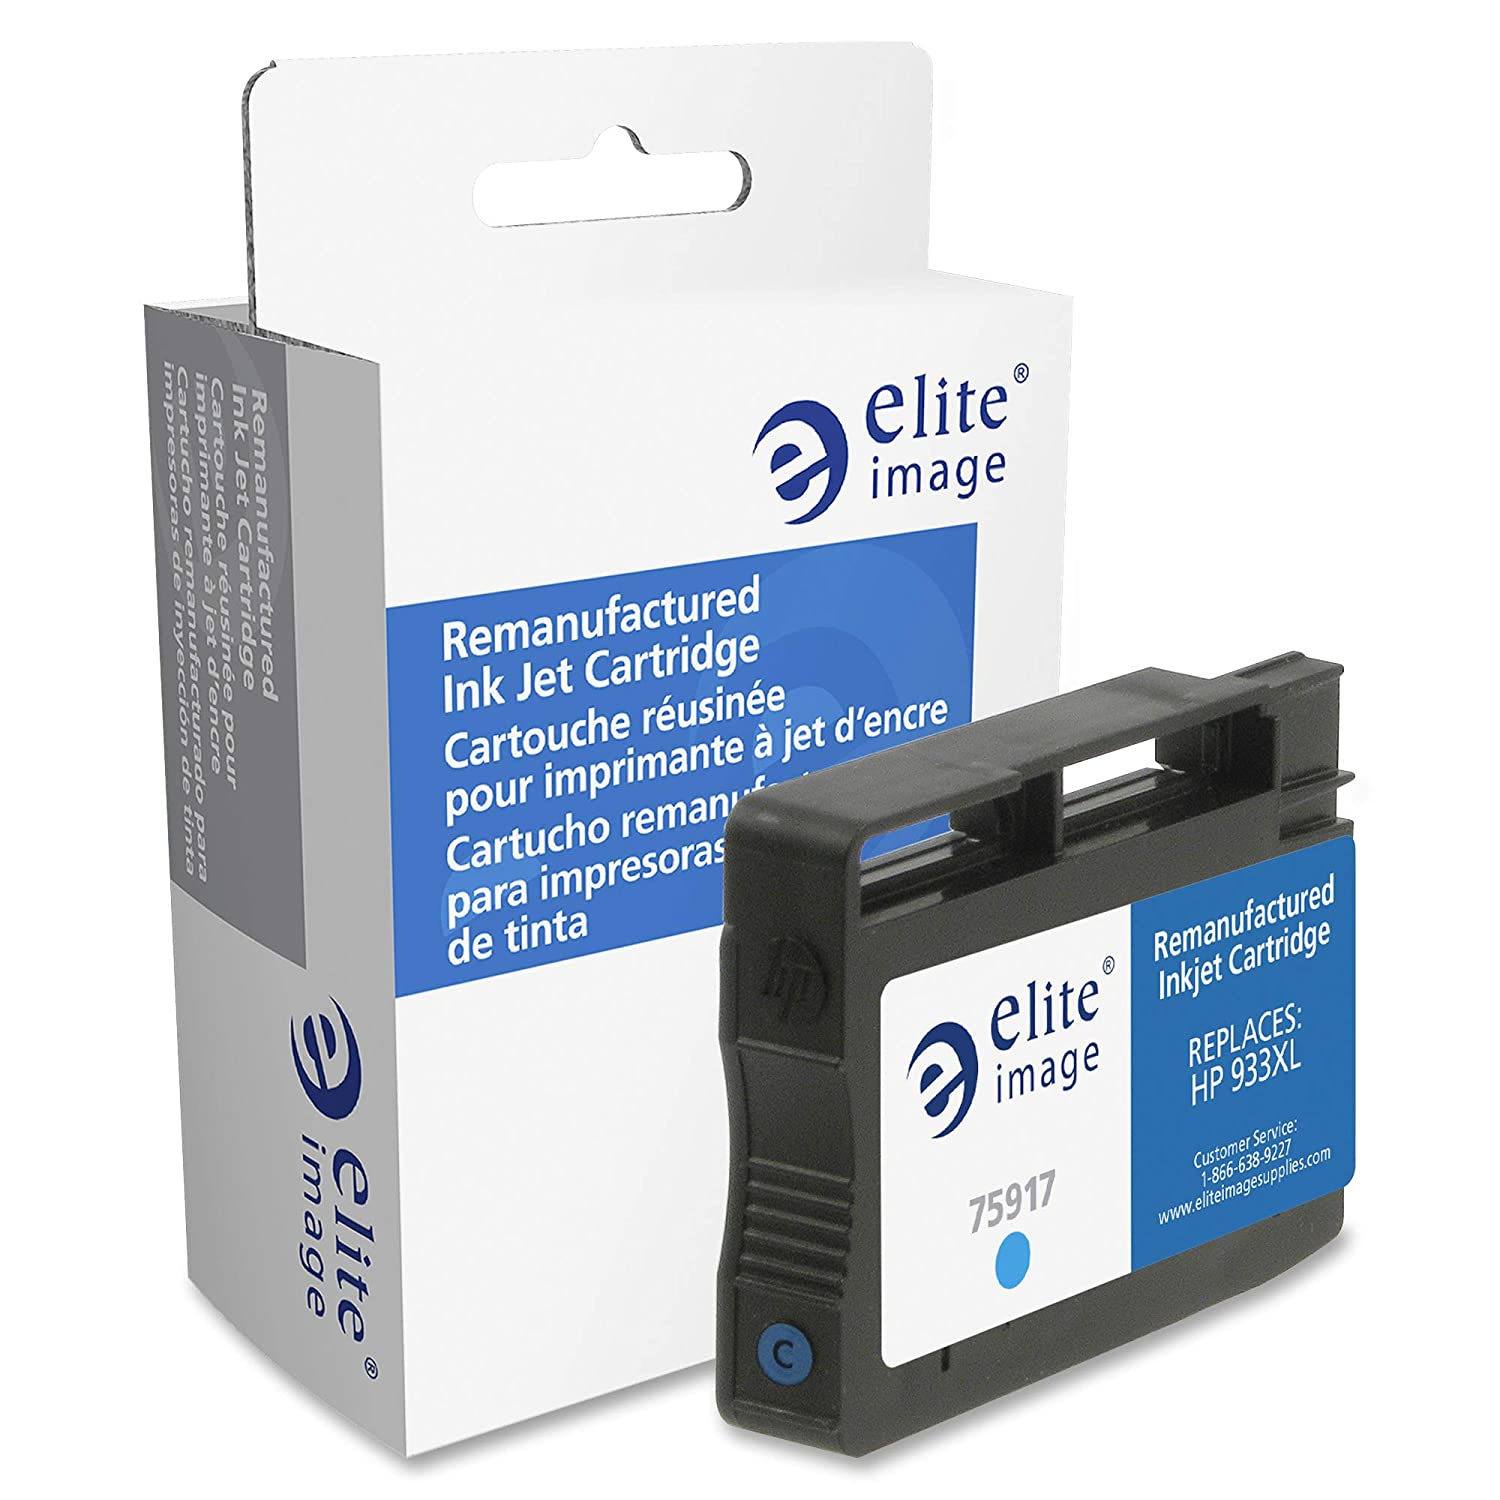 Amazon.com: Elite Image ELI75917 Remanufactured High Yield ...